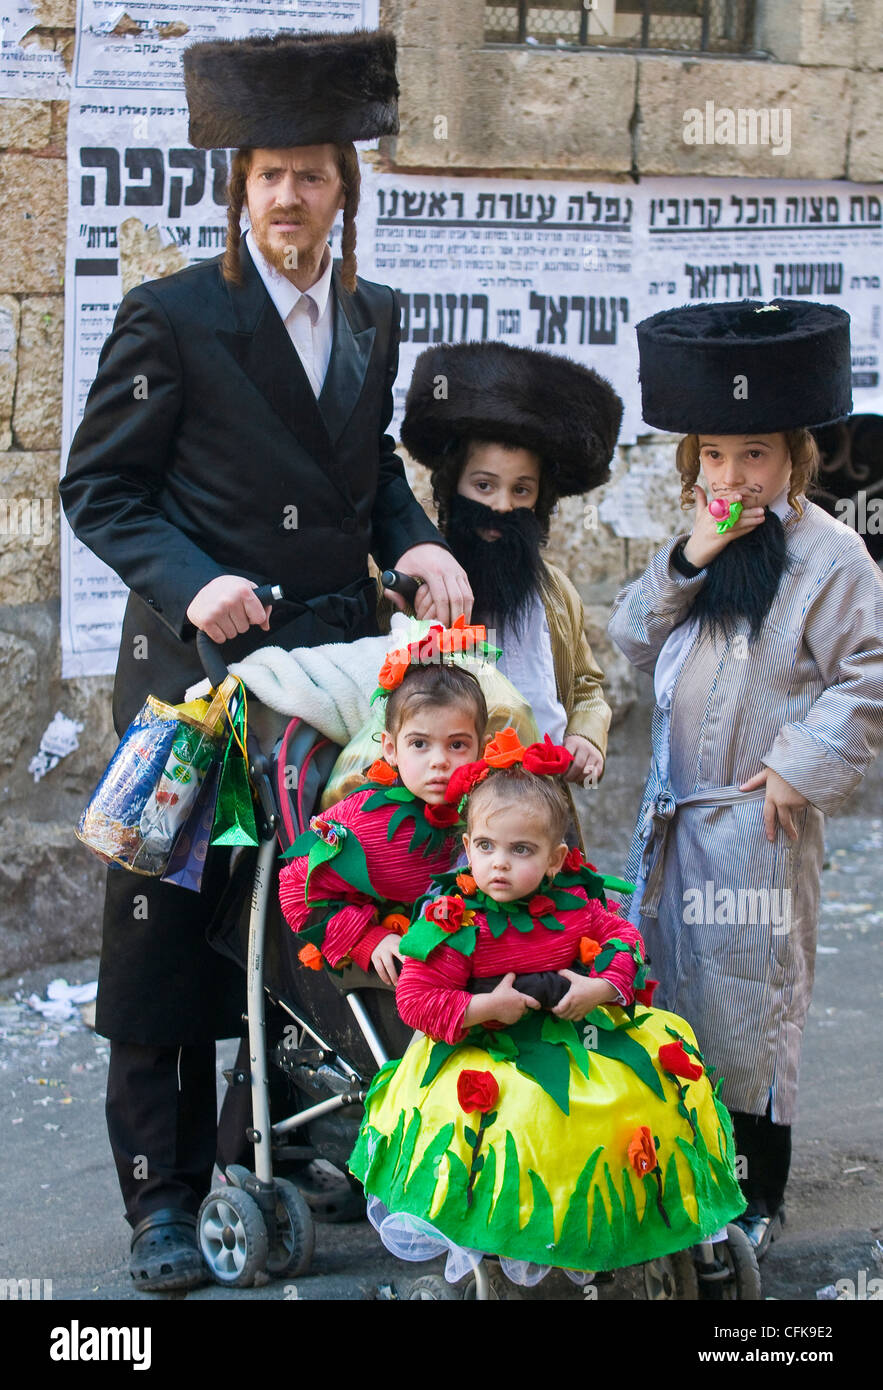 Do we know the traditions of the Orthodox family